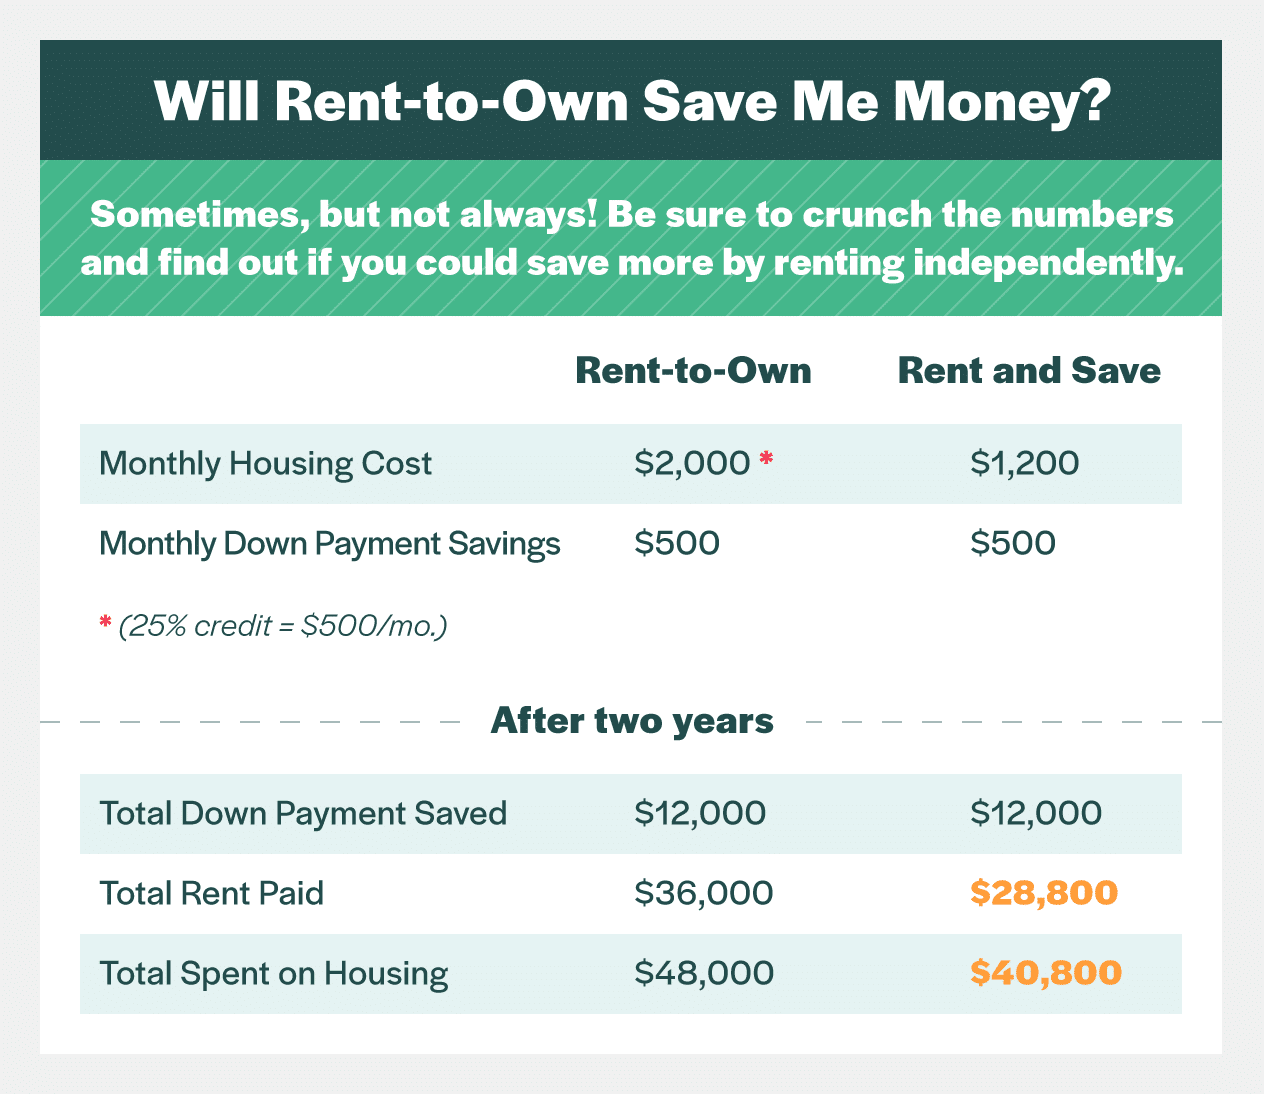 rent to own vs independent savings